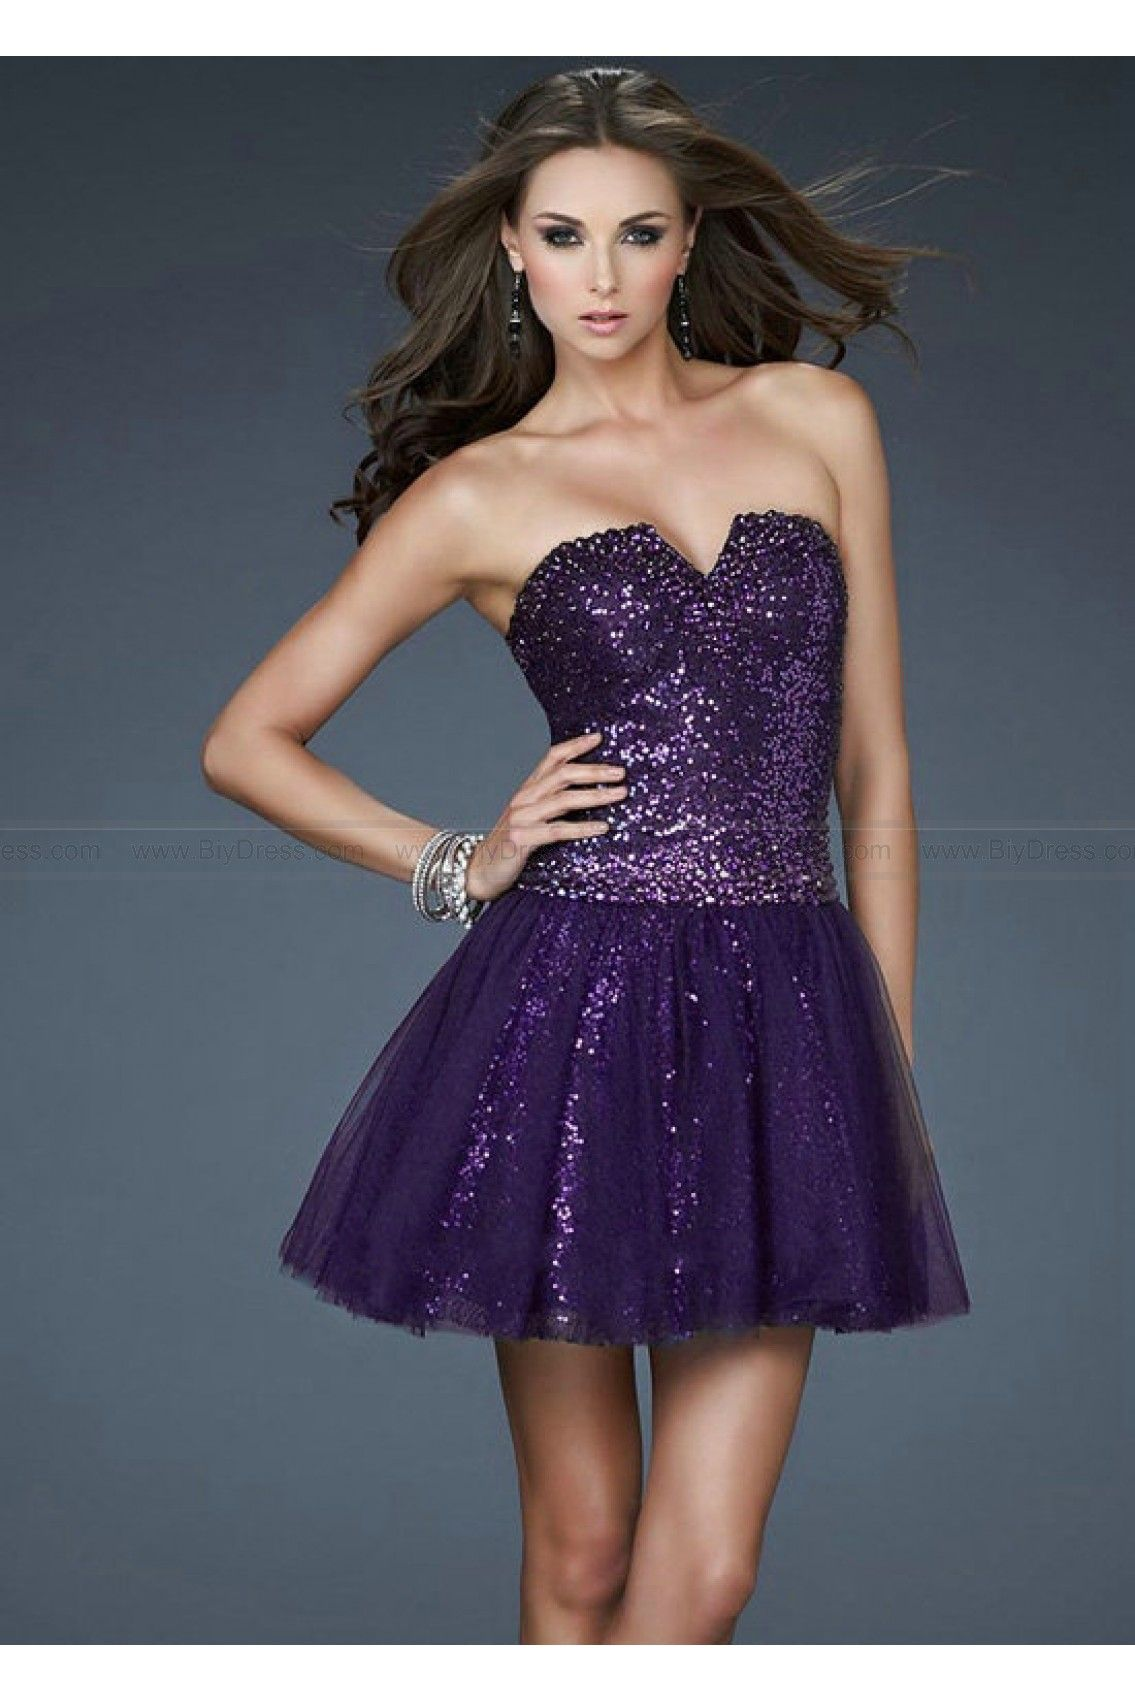 Tailor Made Sequin 2014 Tulle Grape Cocktail Dresses